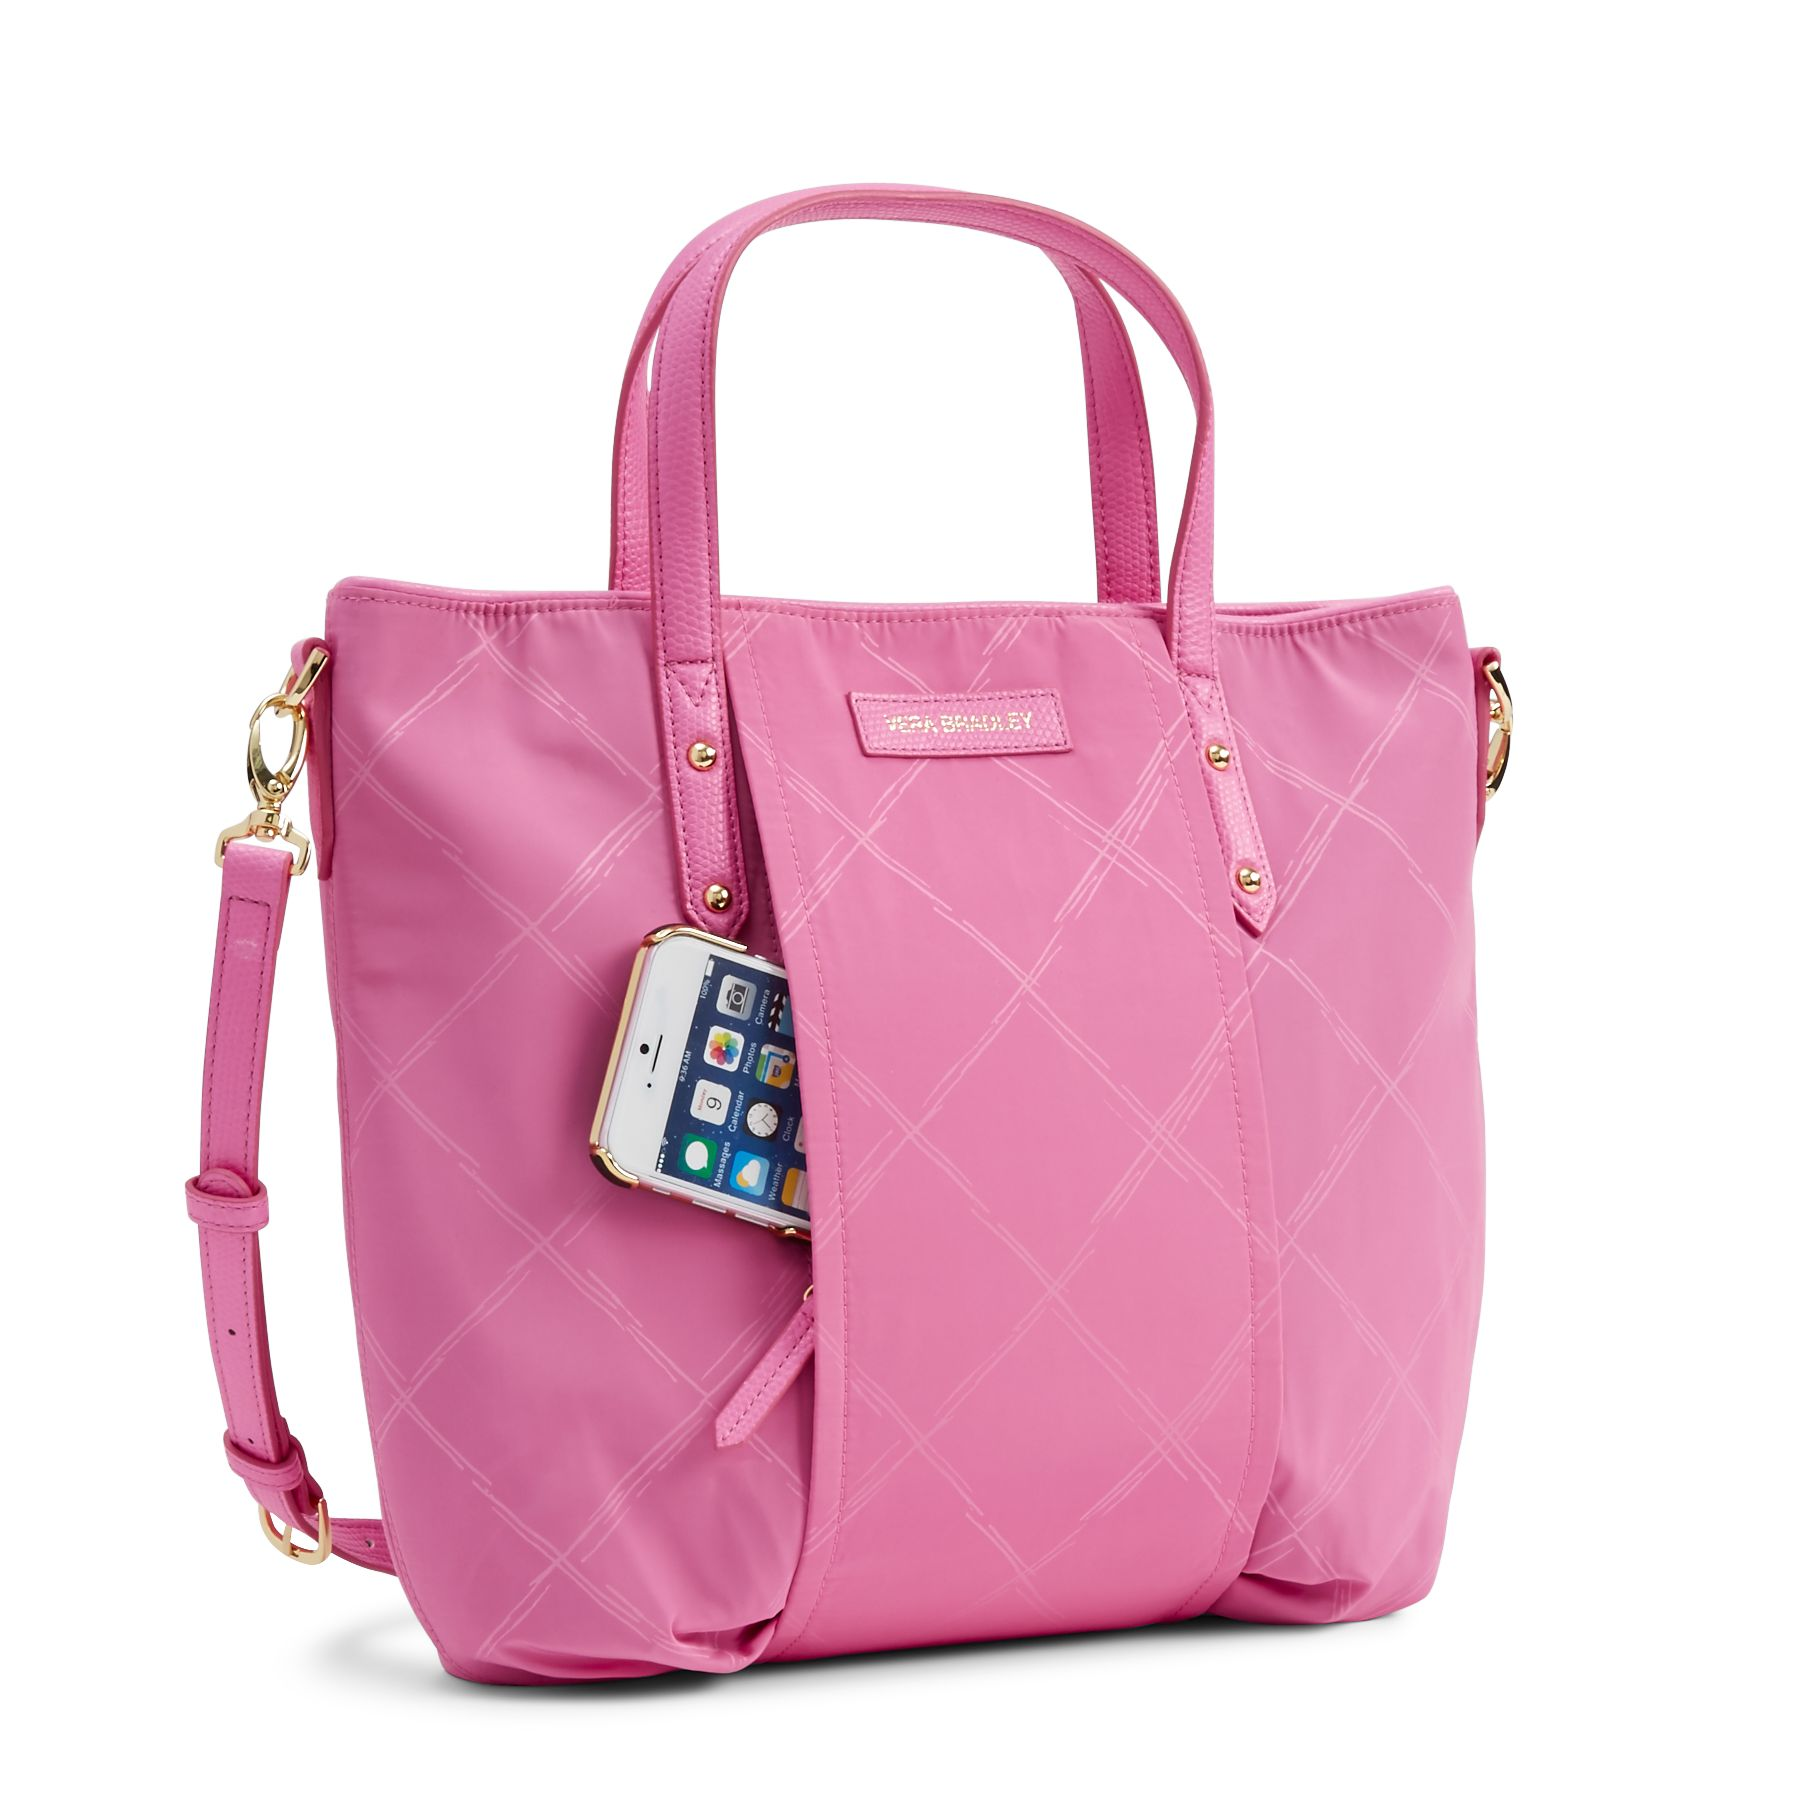 Vera-Bradley-Preppy-Poly-Satchel-Bag